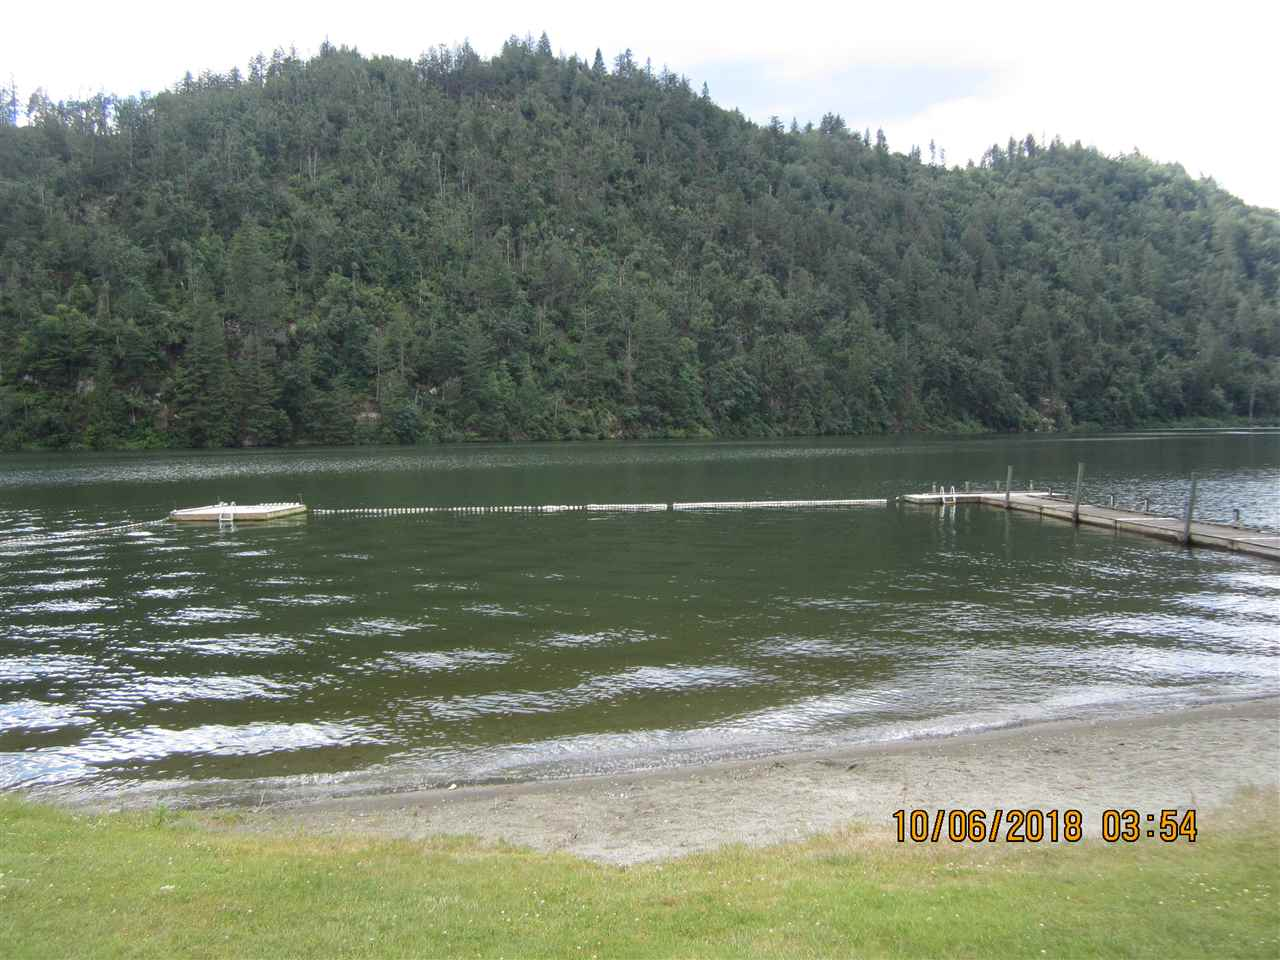 Wonderful Opportunity at Popular SWAN'S POINT RESORT. Rare find - lot only. Includes shed enjoy the lake rain or shine. Swim, fish, waterski, host and enjoy all the lake has to offer. Gated community very well kept, lovely beaches, docks, clubhouse, tennis court and private boat launch. Just over an hour from Vancouver, $163.00 per month including taxes.